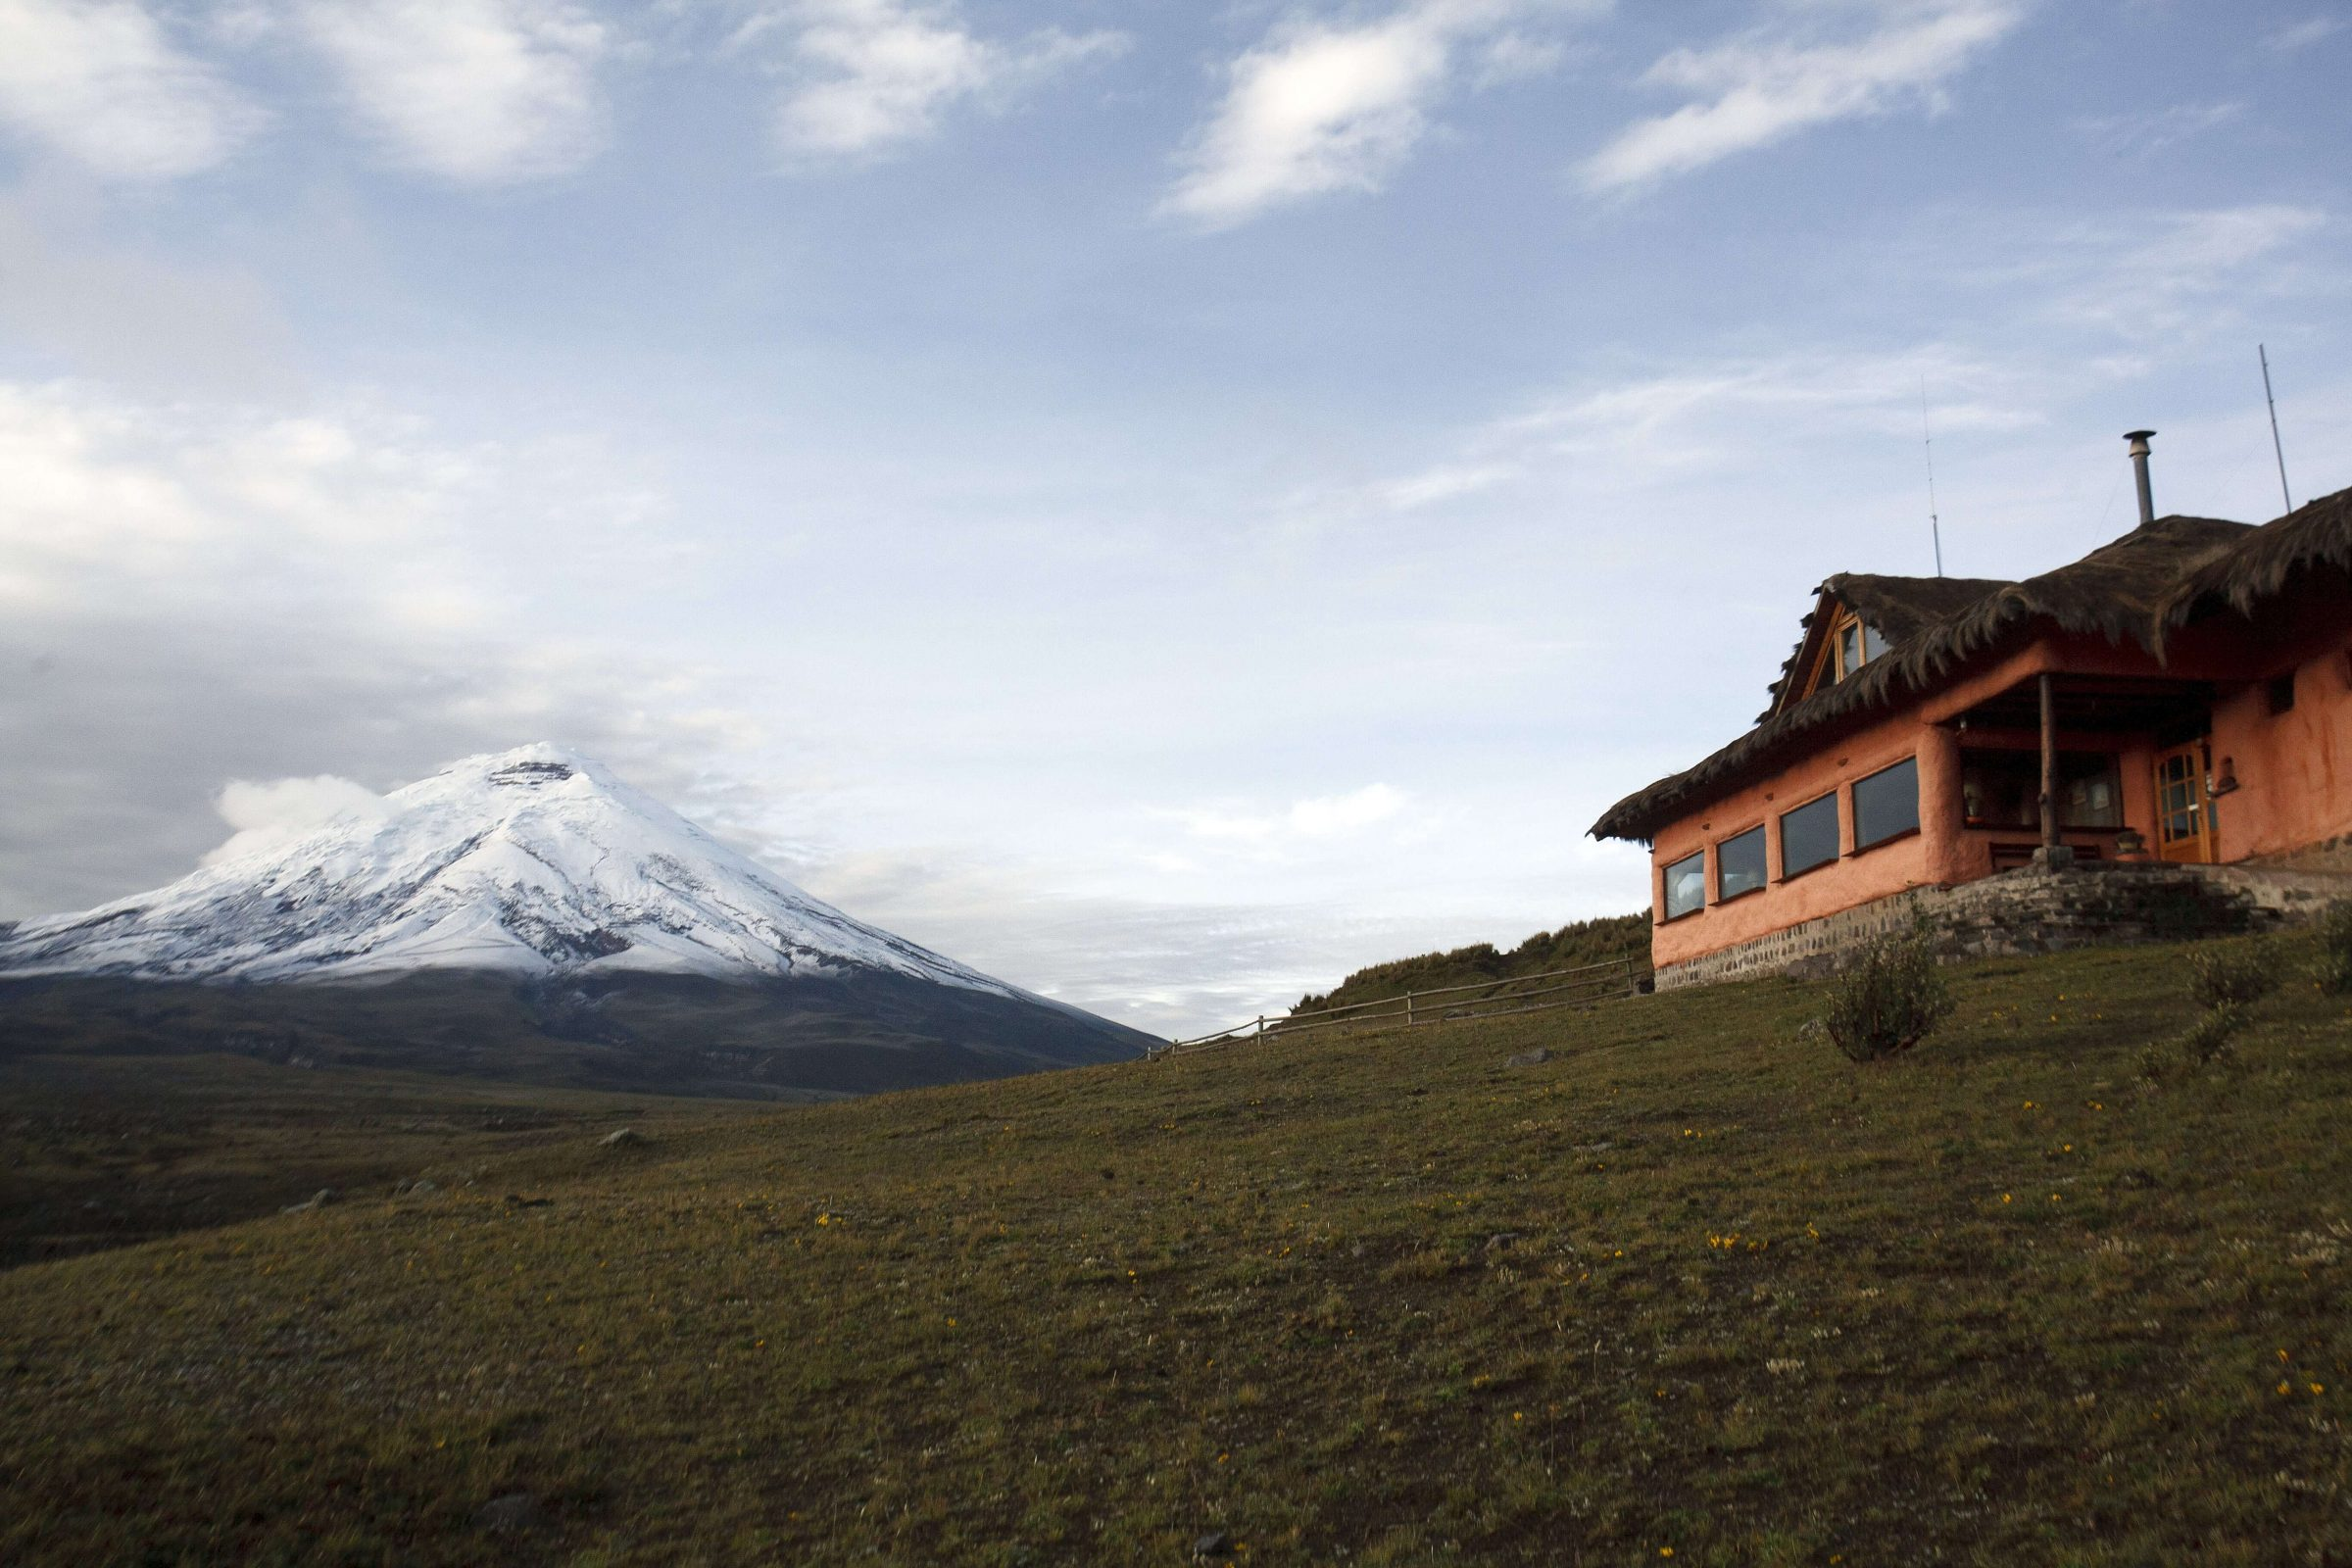 Tour to Cotopaxi, tips for an amazing adventure